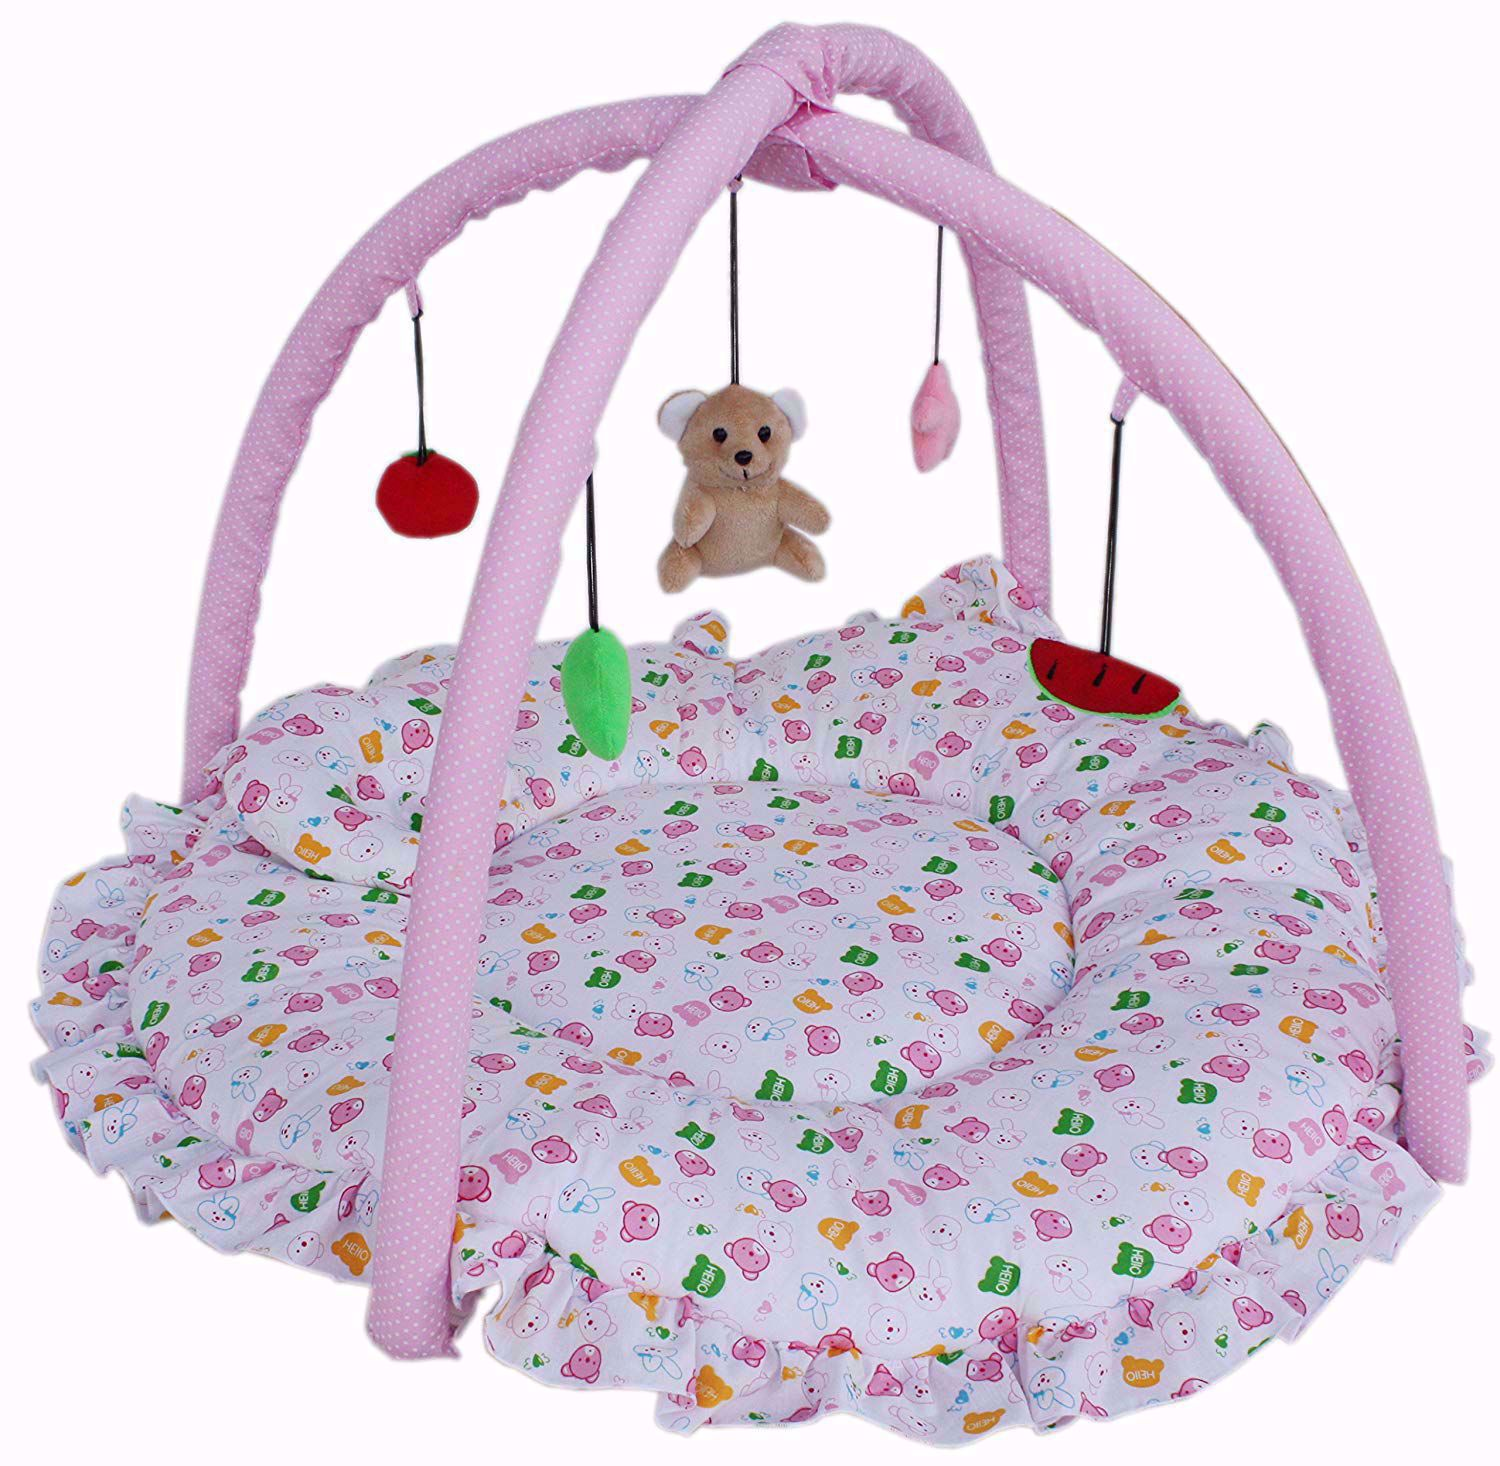 Baby Play Gym Round Pink